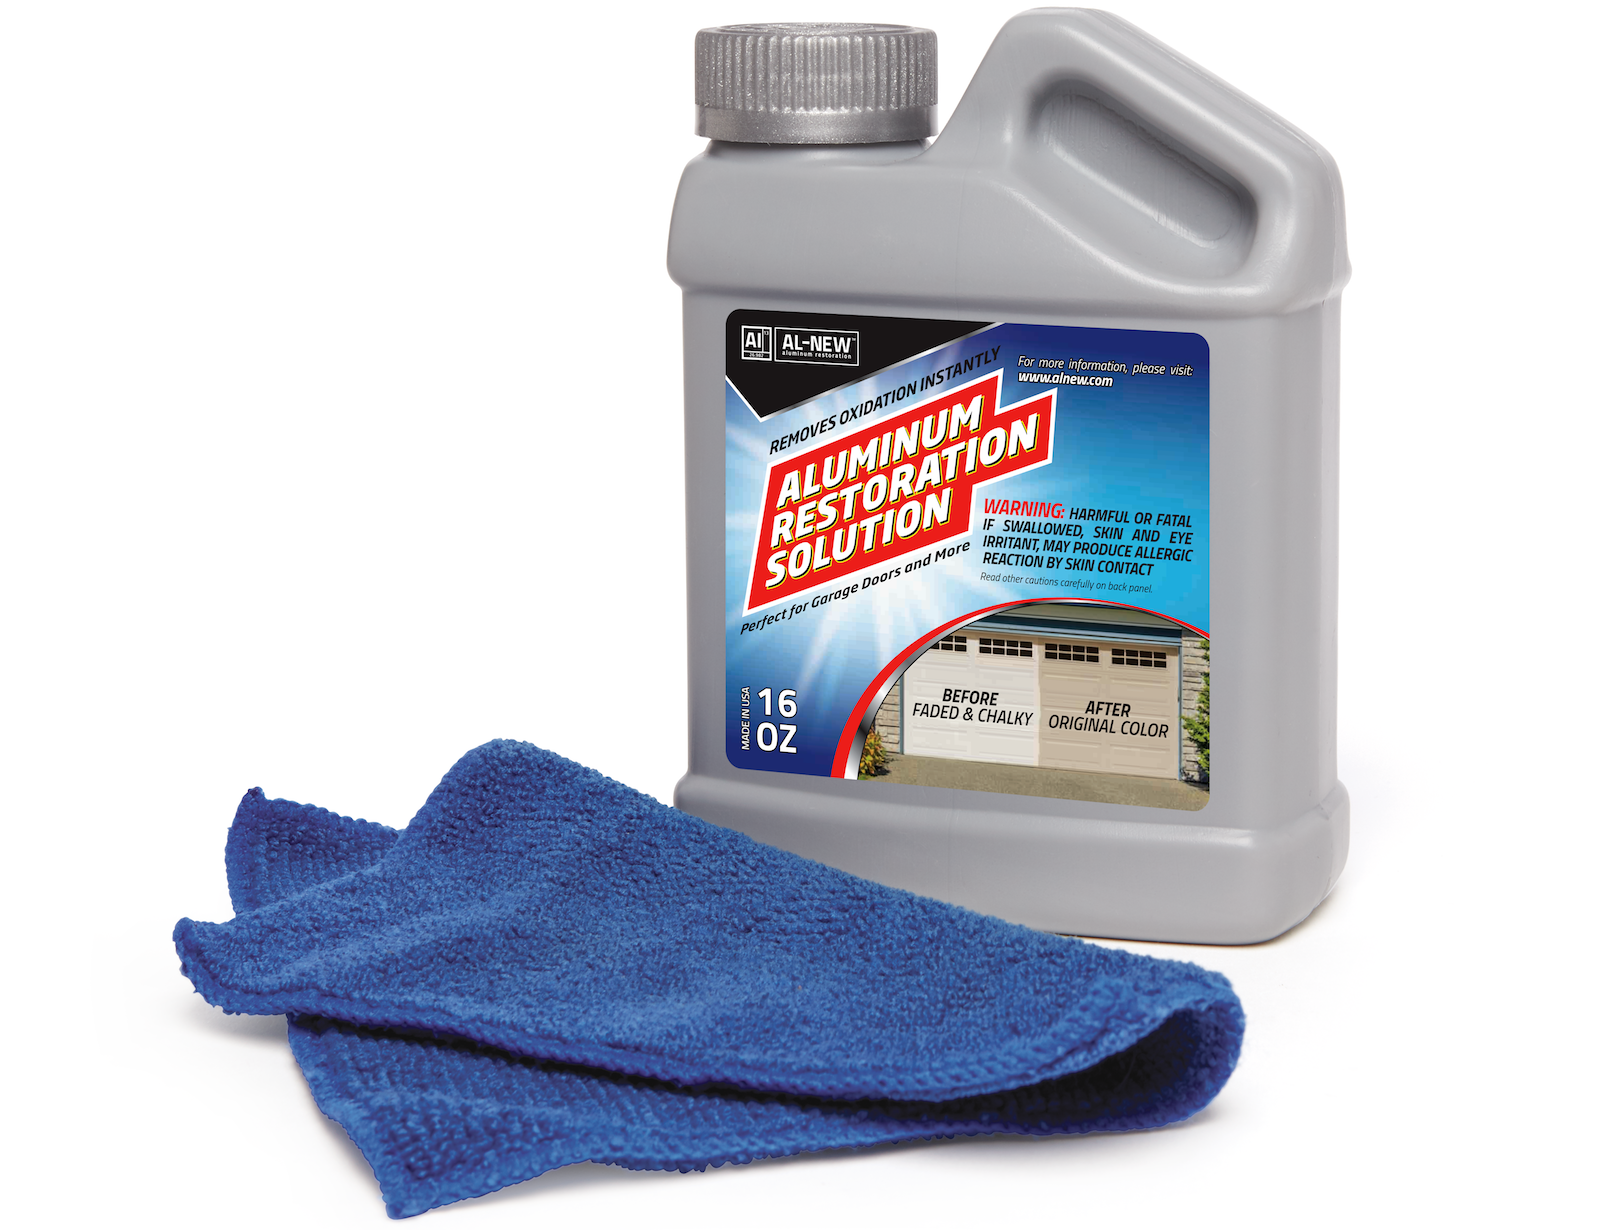 AL-NEW's Aluminum Restoration Solution: Just wipe it on, and watch it instantly remove years of aluminum oxidation. AL-NEW doesn't require pre-cleaning, stripping, or masking.